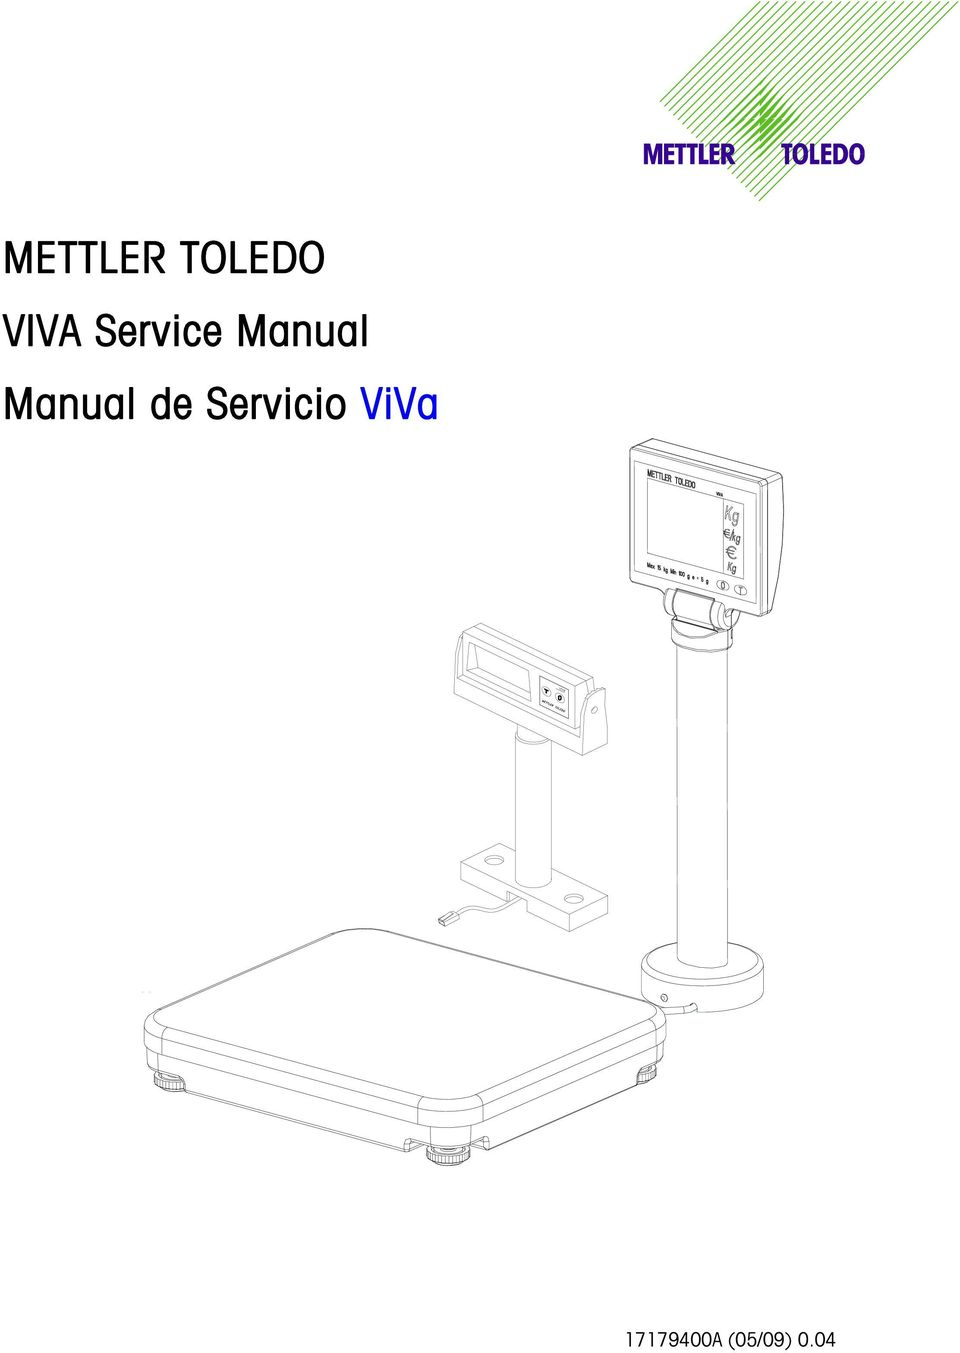 2 INTRODUCTION This publication is provided solely as a guide for  individuals who have purchased the METTLER TOLEDO Viva scale product.